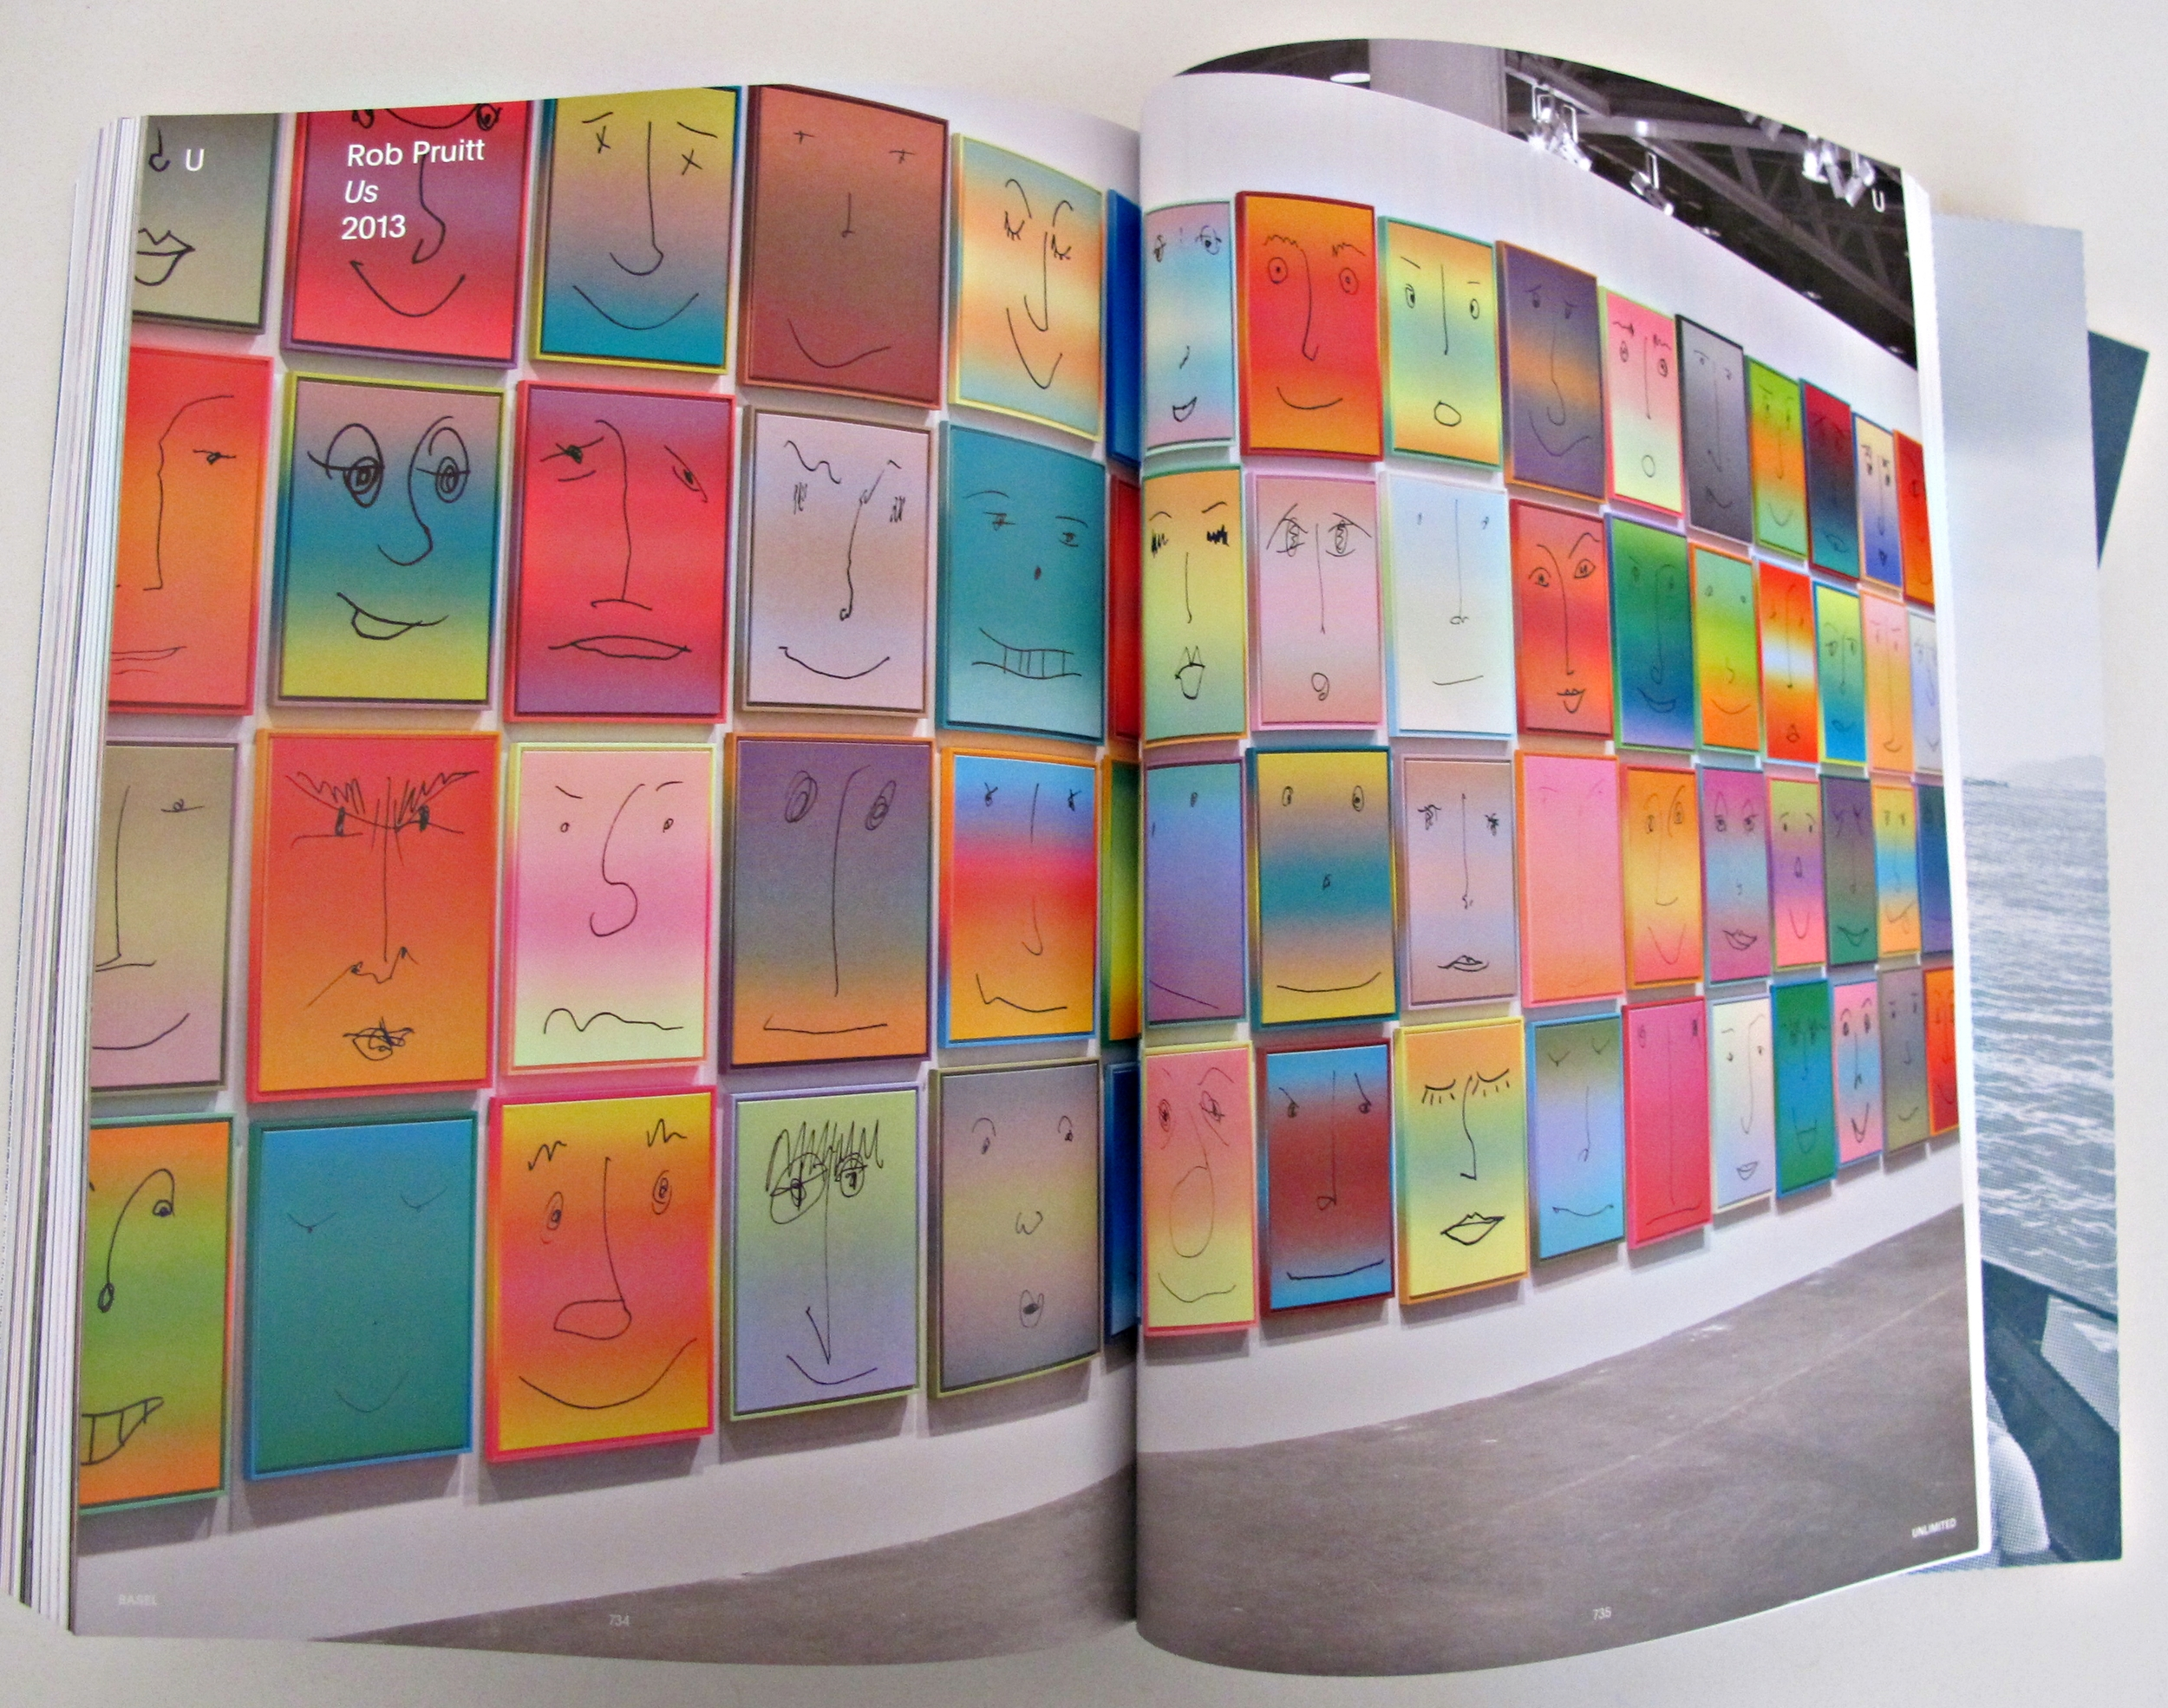 """Rob Pruitt's installation at """"Us' gallery in Basel, 2013"""